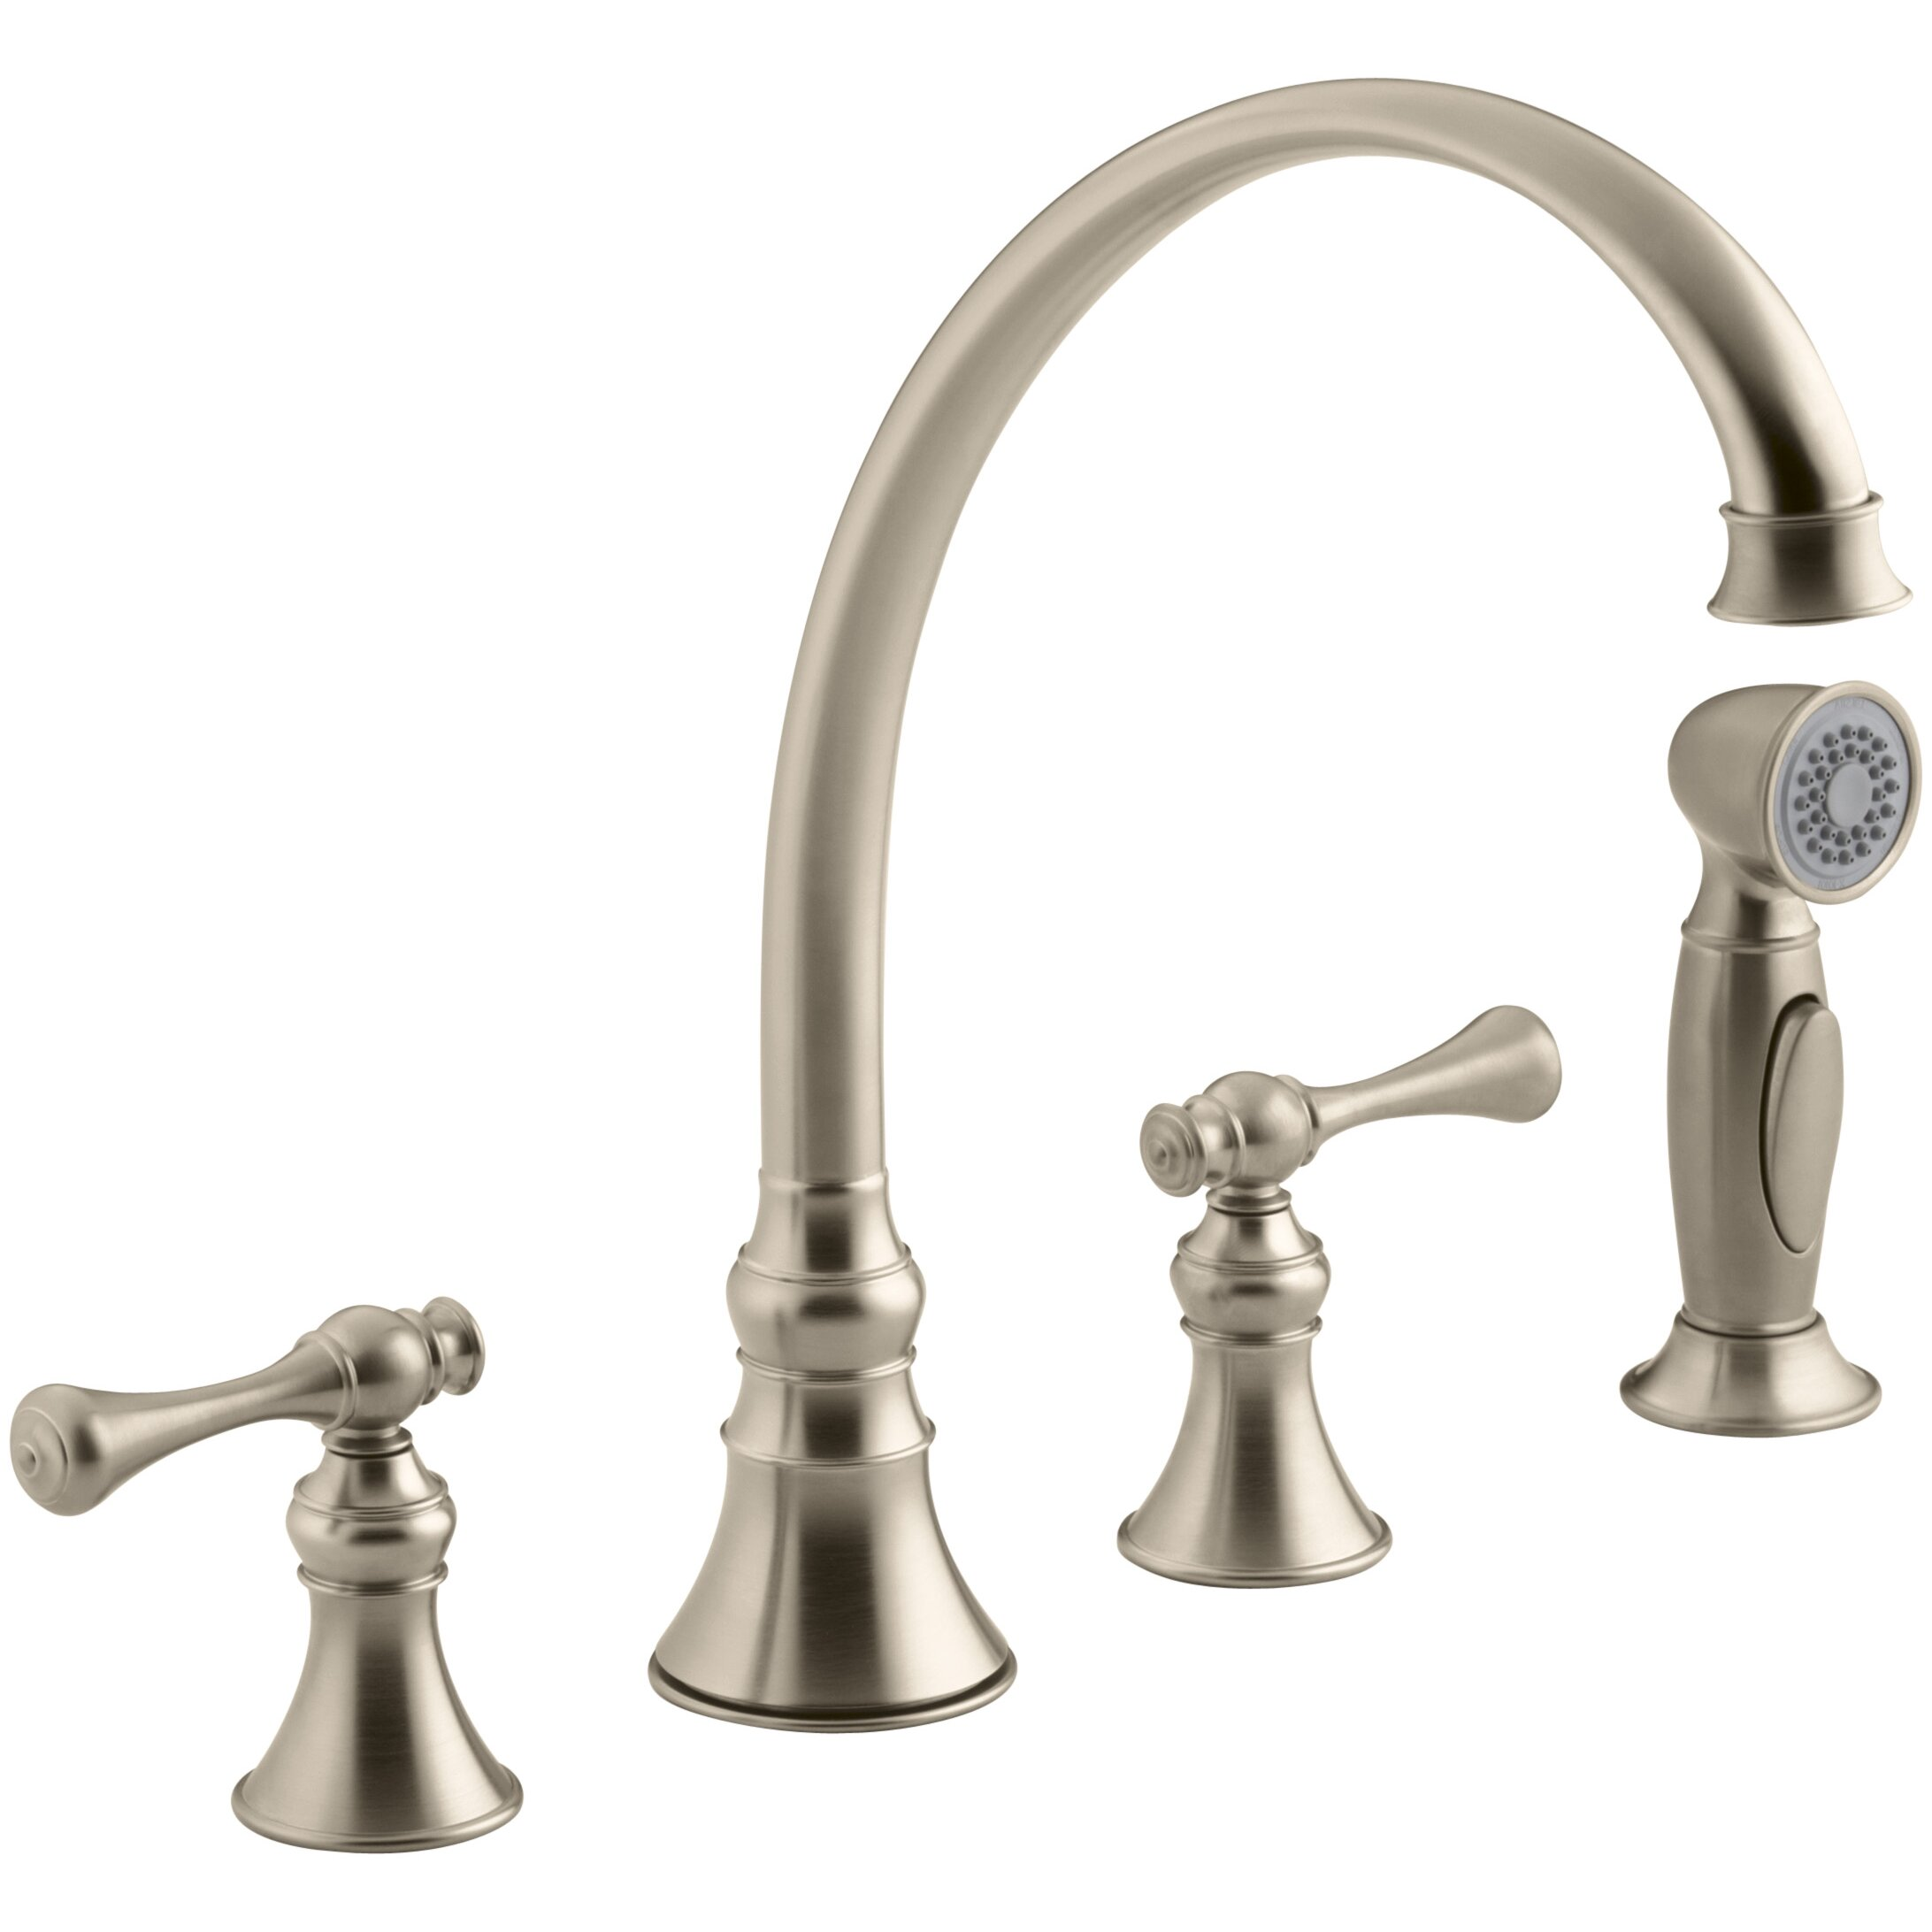 Kohler Revival 4-Hole Kitchen Sink Faucet With 9-3/16